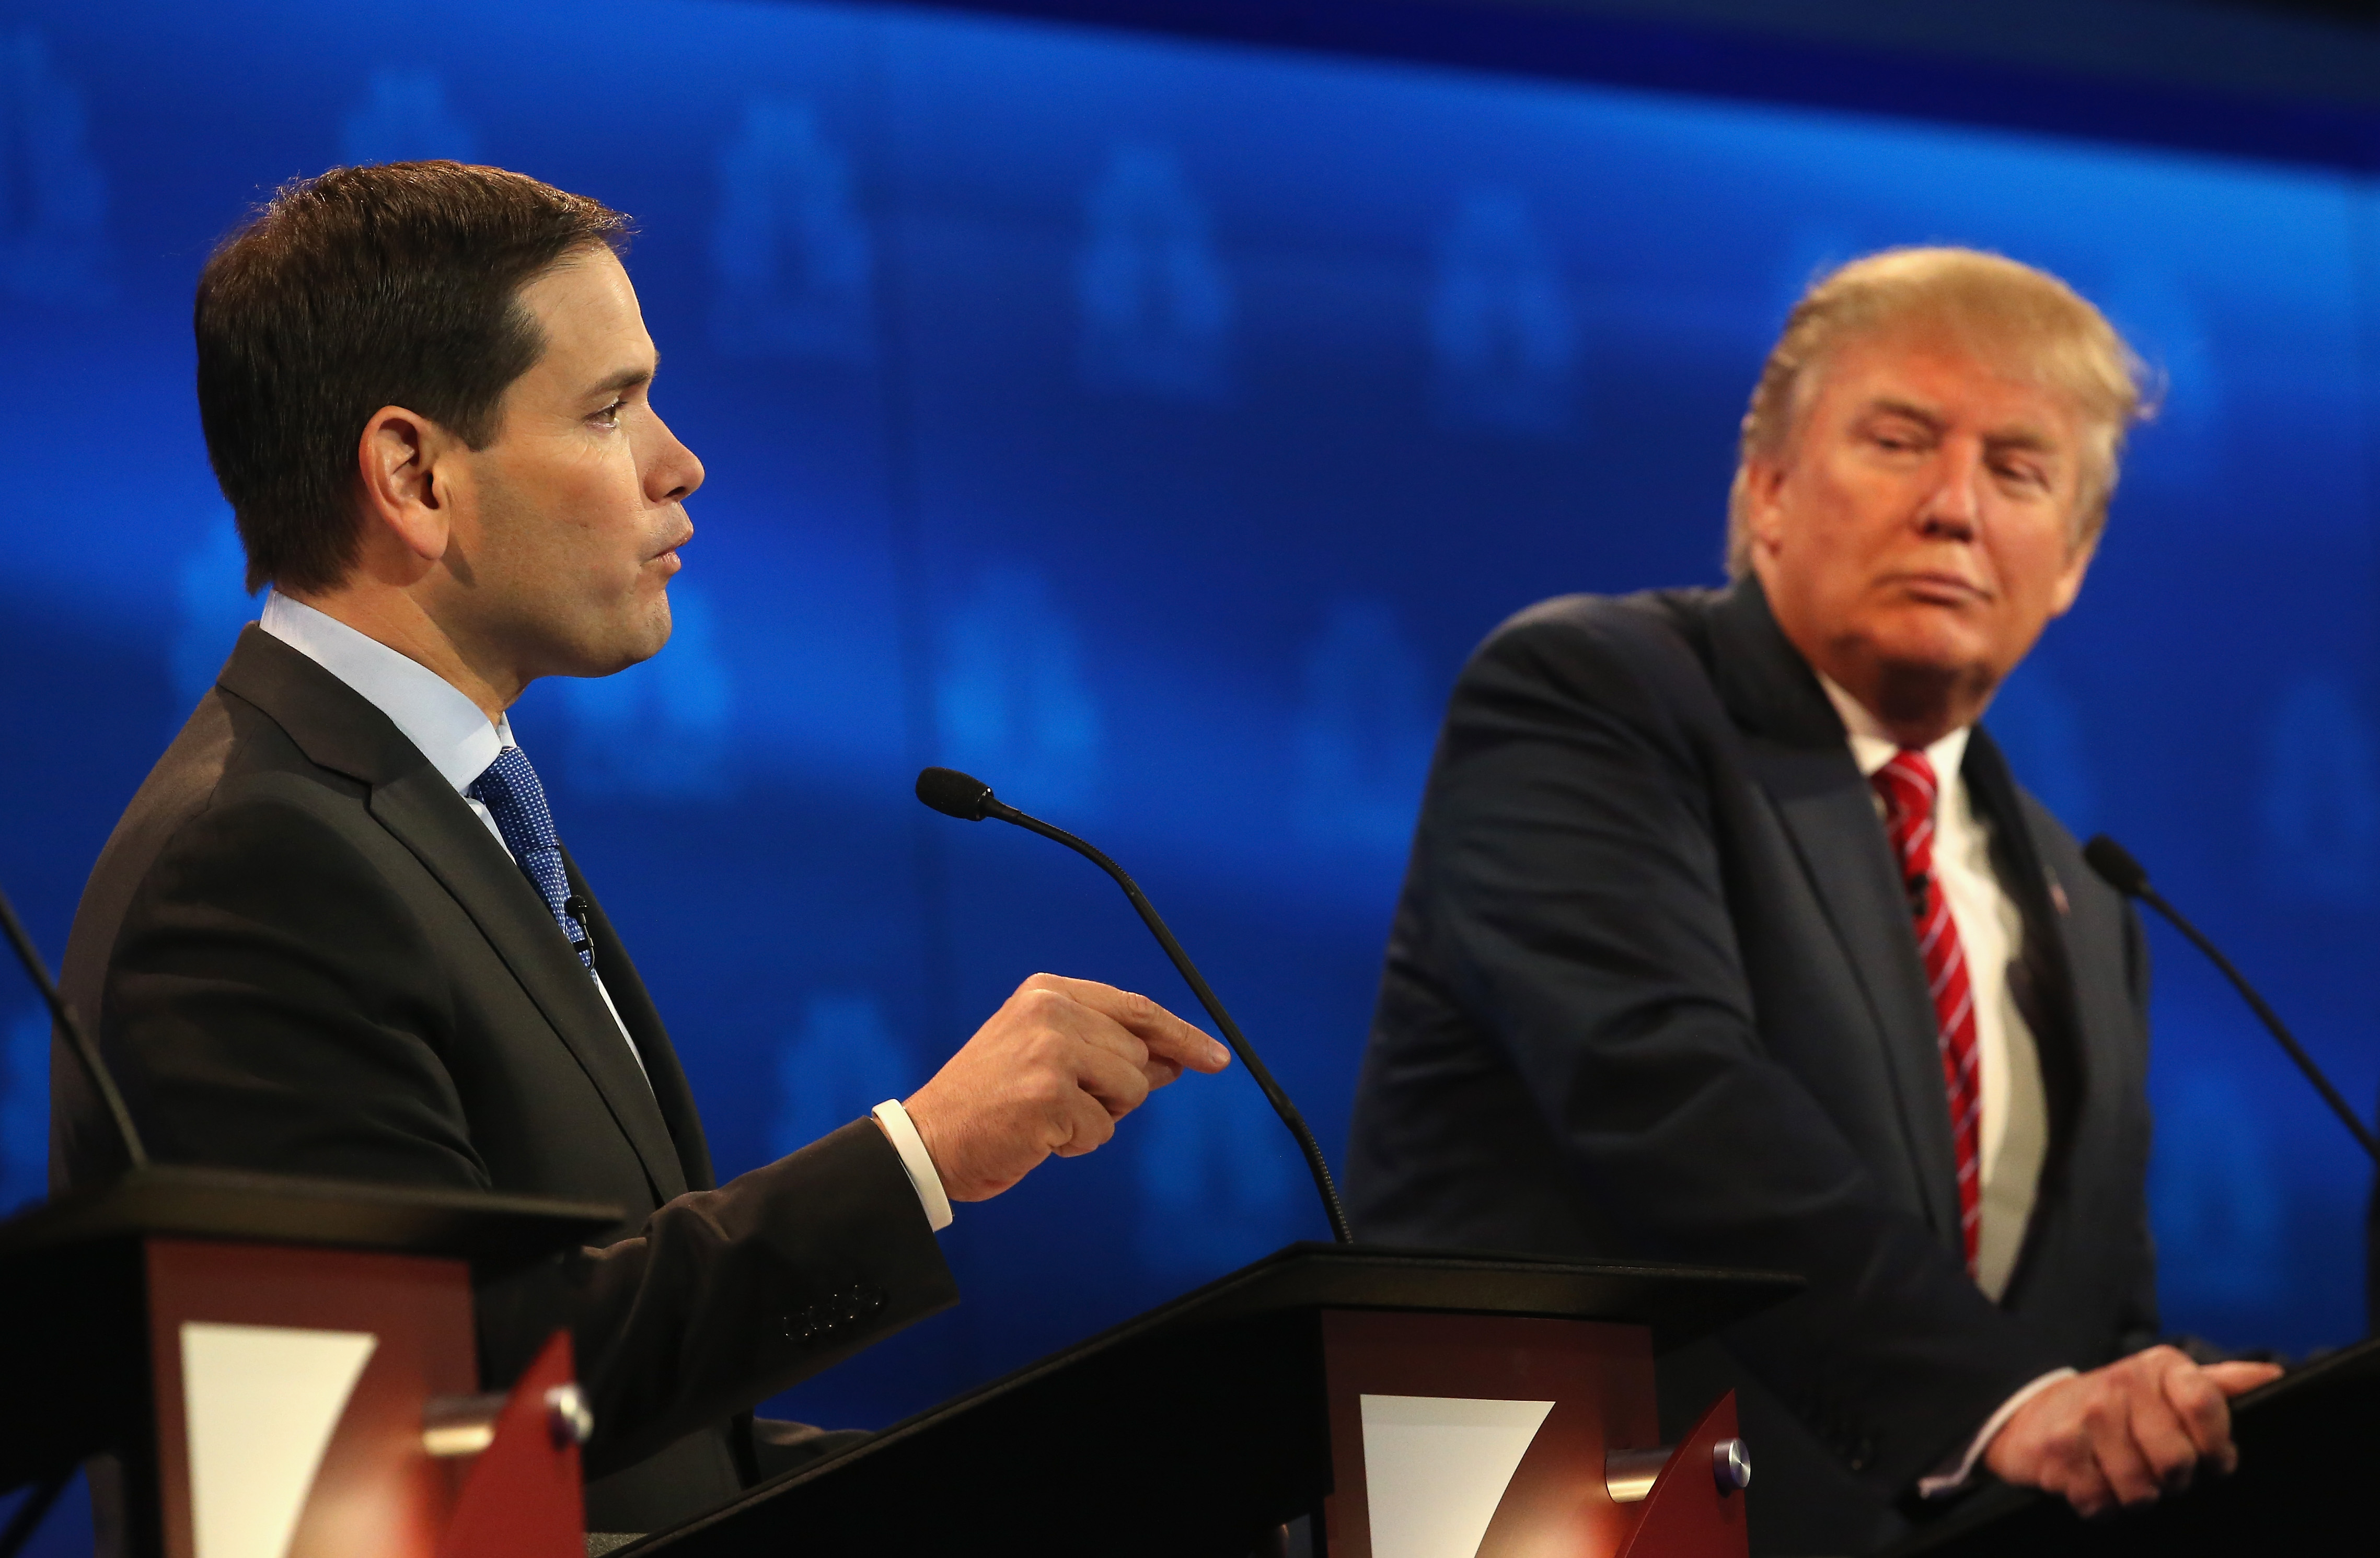 Sen. Marco Rubio speaks while Donald Trump looks on during the CNBC Republican Presidential Debate on October 28, 2015 in Boulder, Colorado. (Justin Sullivan/Getty Images)